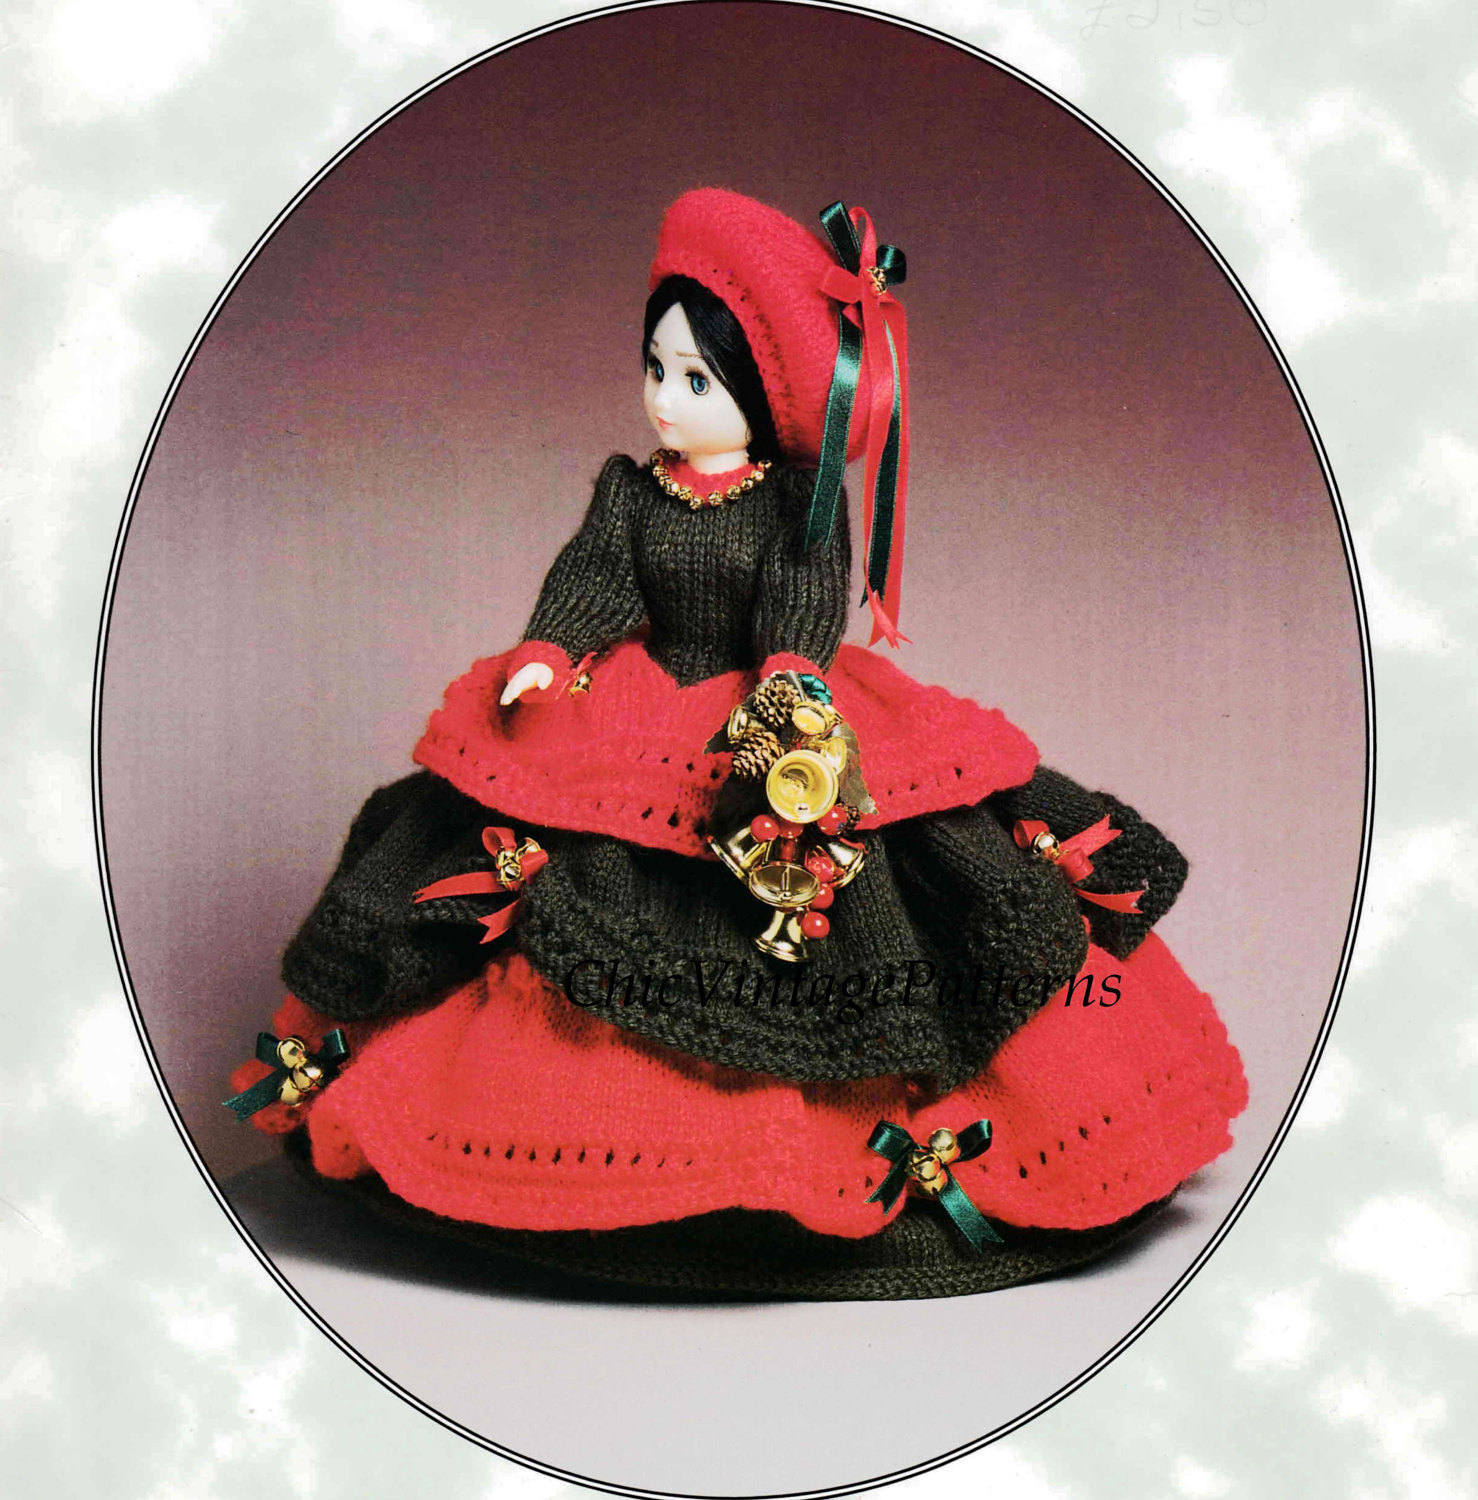 Christmas Belle Knitted Doll's Dress, 15 inch Doll, Instant Download, Christmas Decoration